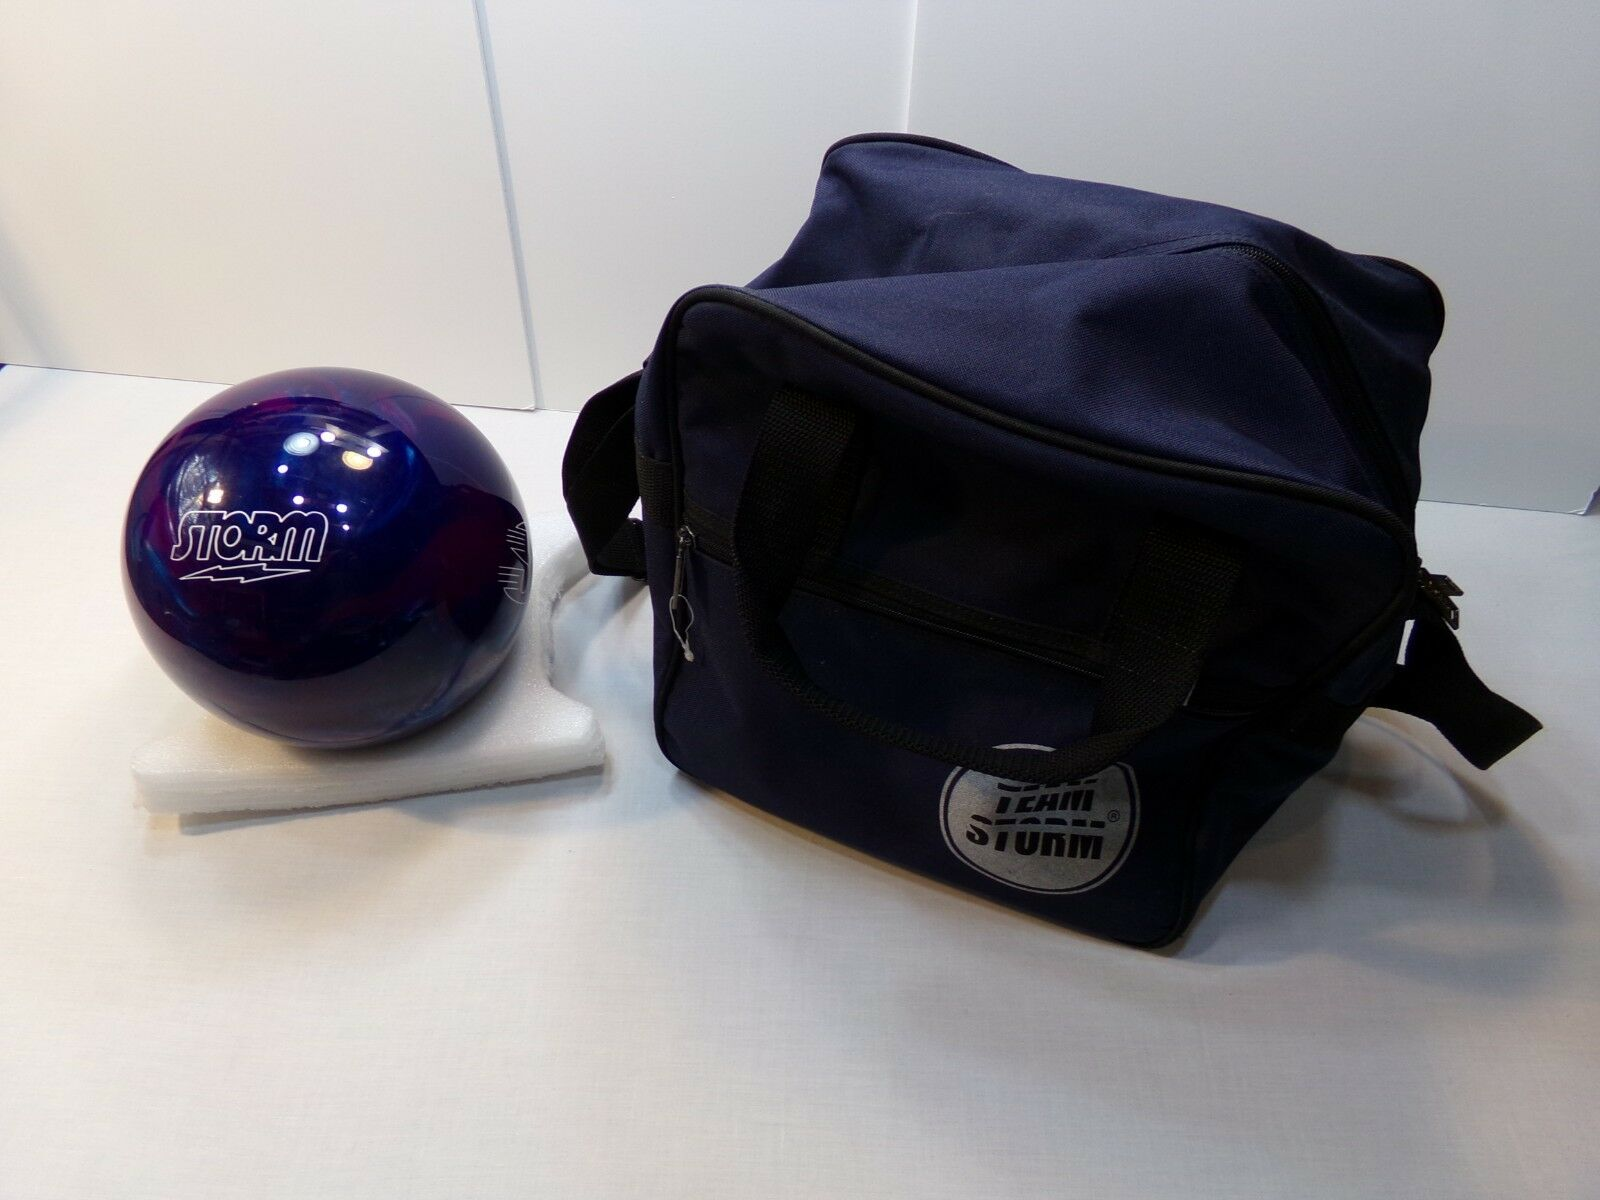 Storm or Team Storm 13.5 Pound Bowling Ball & Bag - New and Never Drilled Out